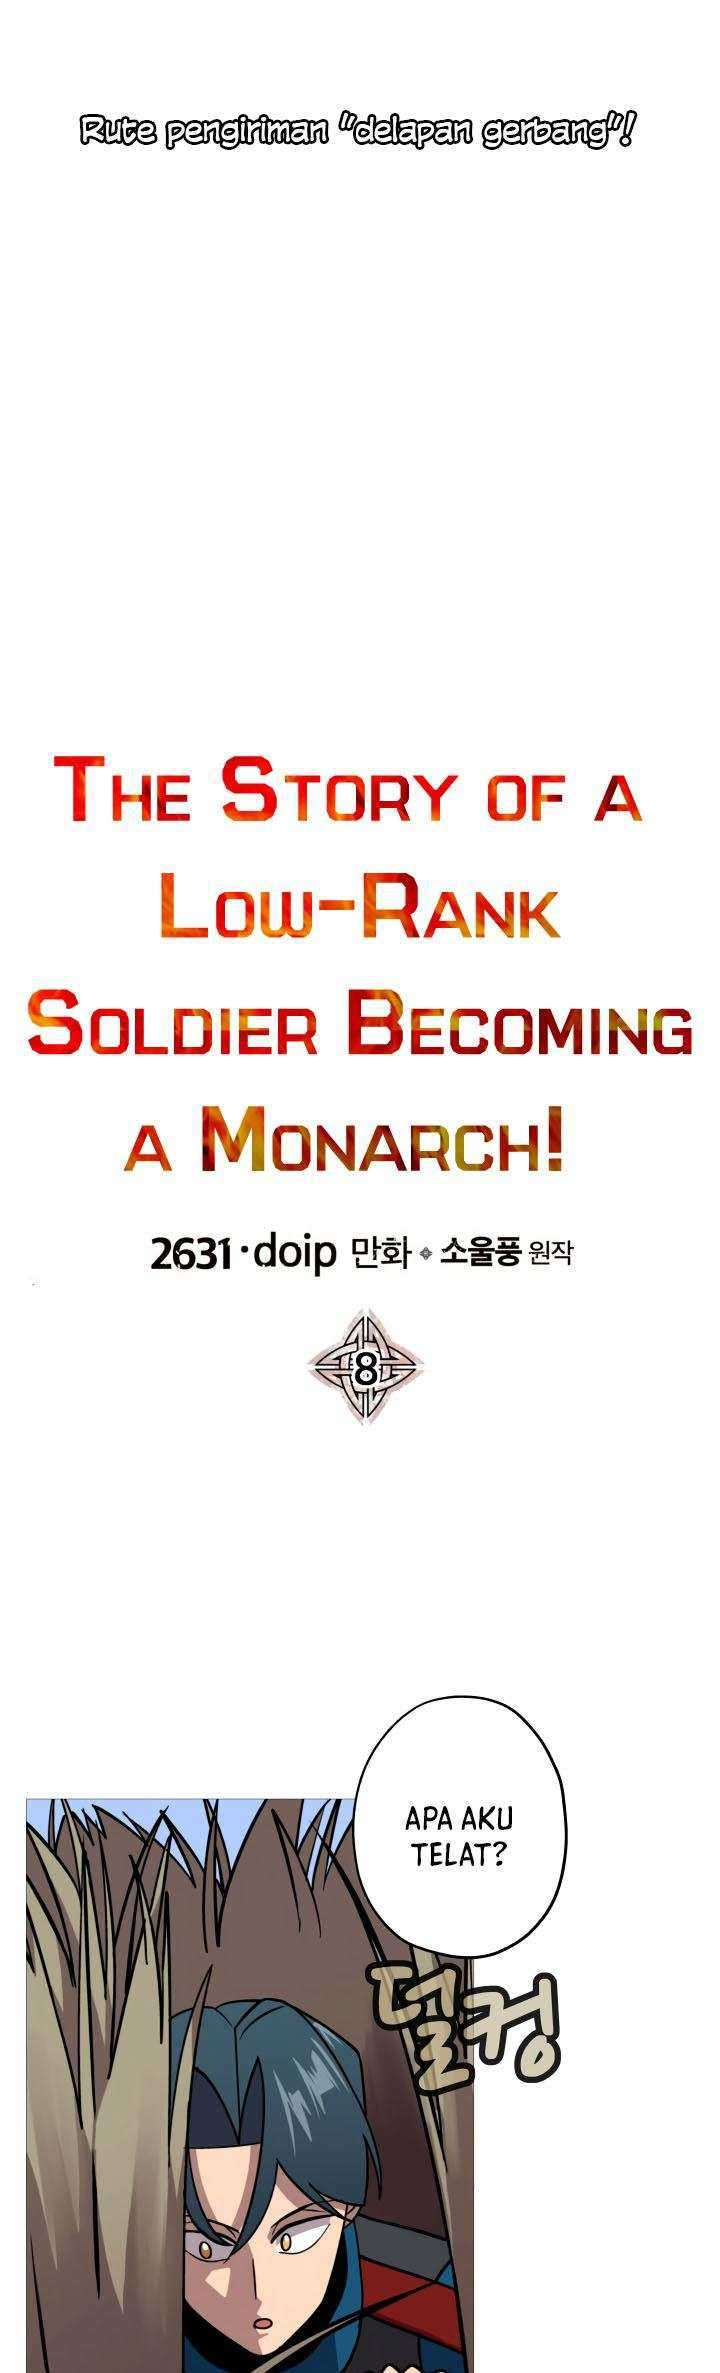 The Story Of A Low-rank Soldier Becoming A Monarch Chapter 8